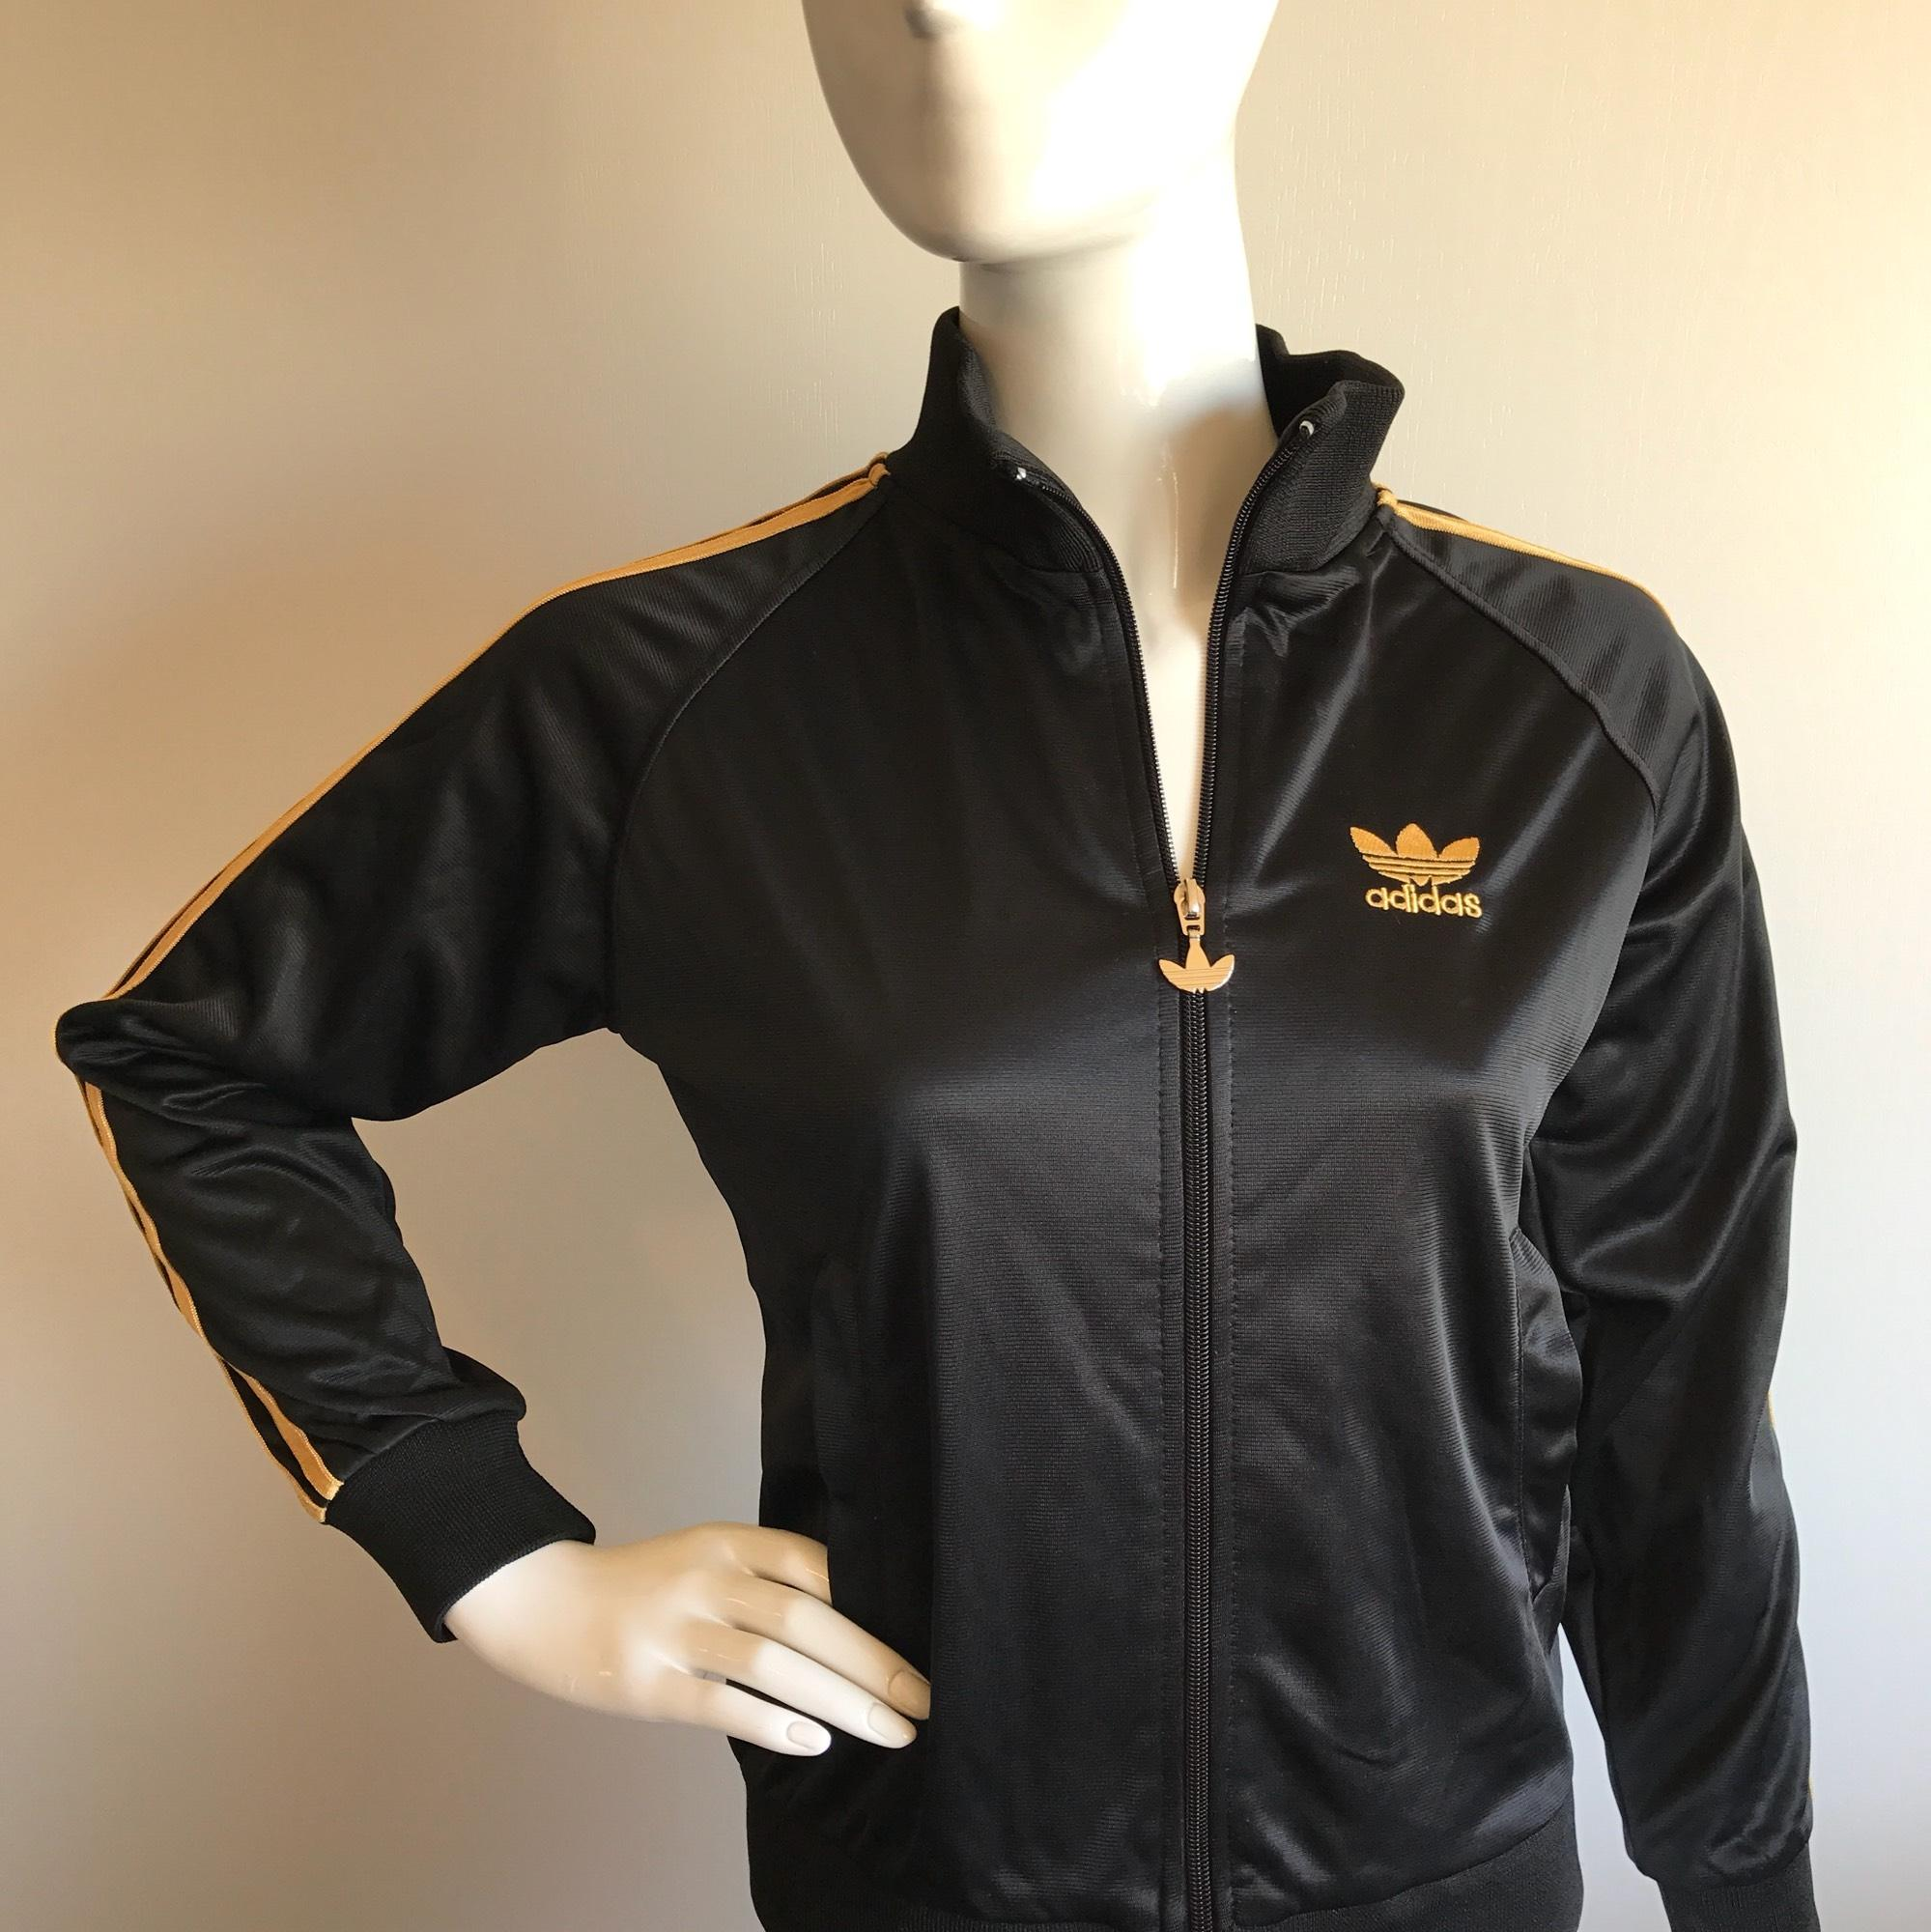 adidas black and gold jacket